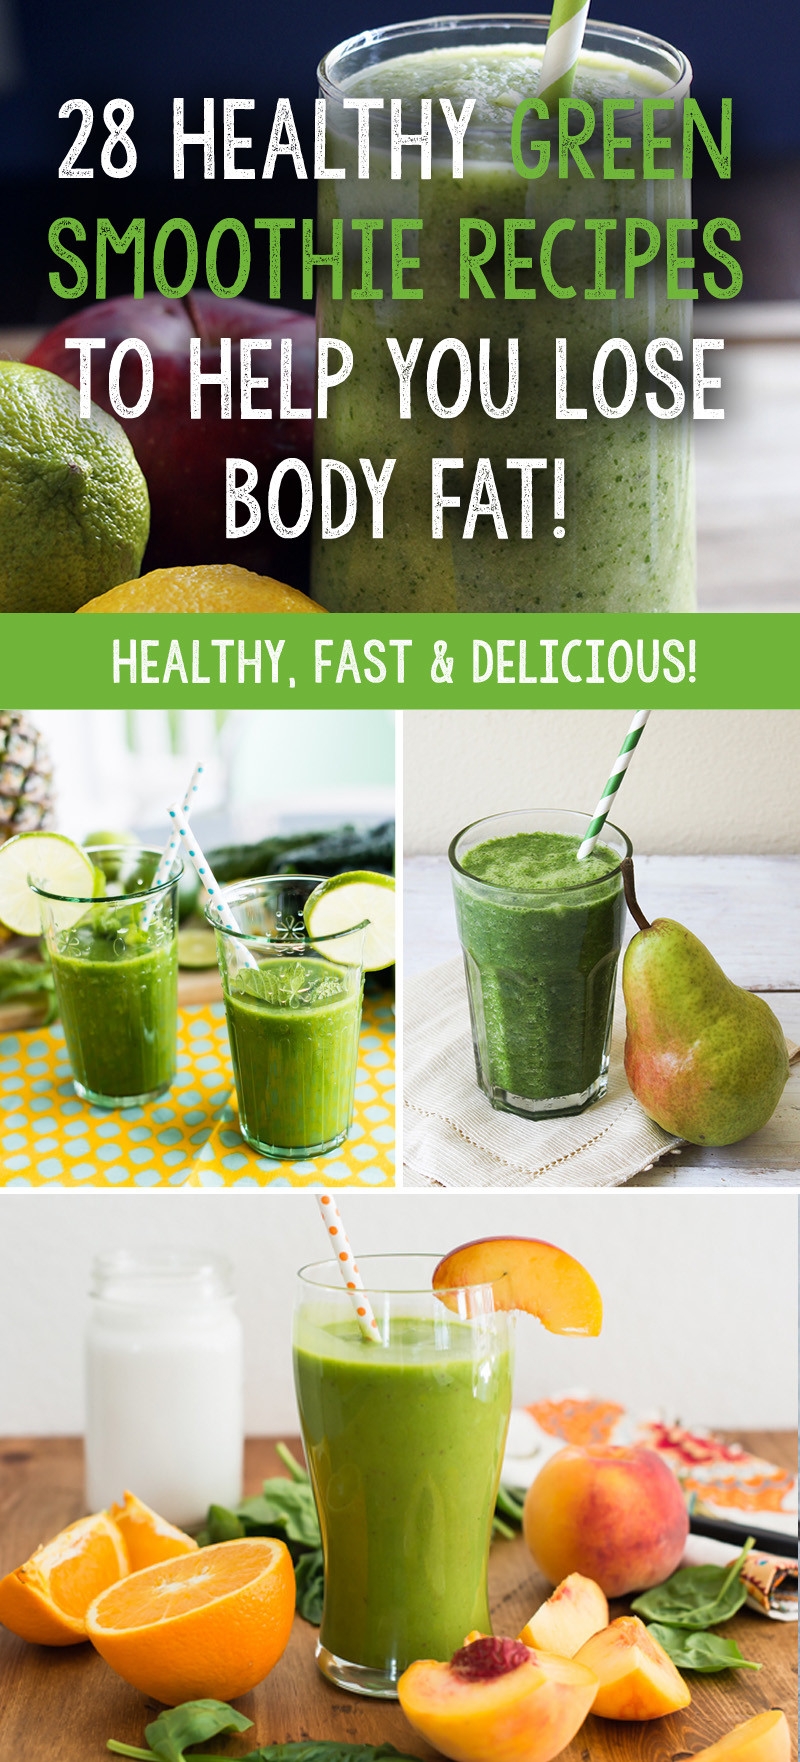 Healthy Green Smoothie Recipes  28 Healthy Green Smoothie Recipes To Help You Lose Body Fat